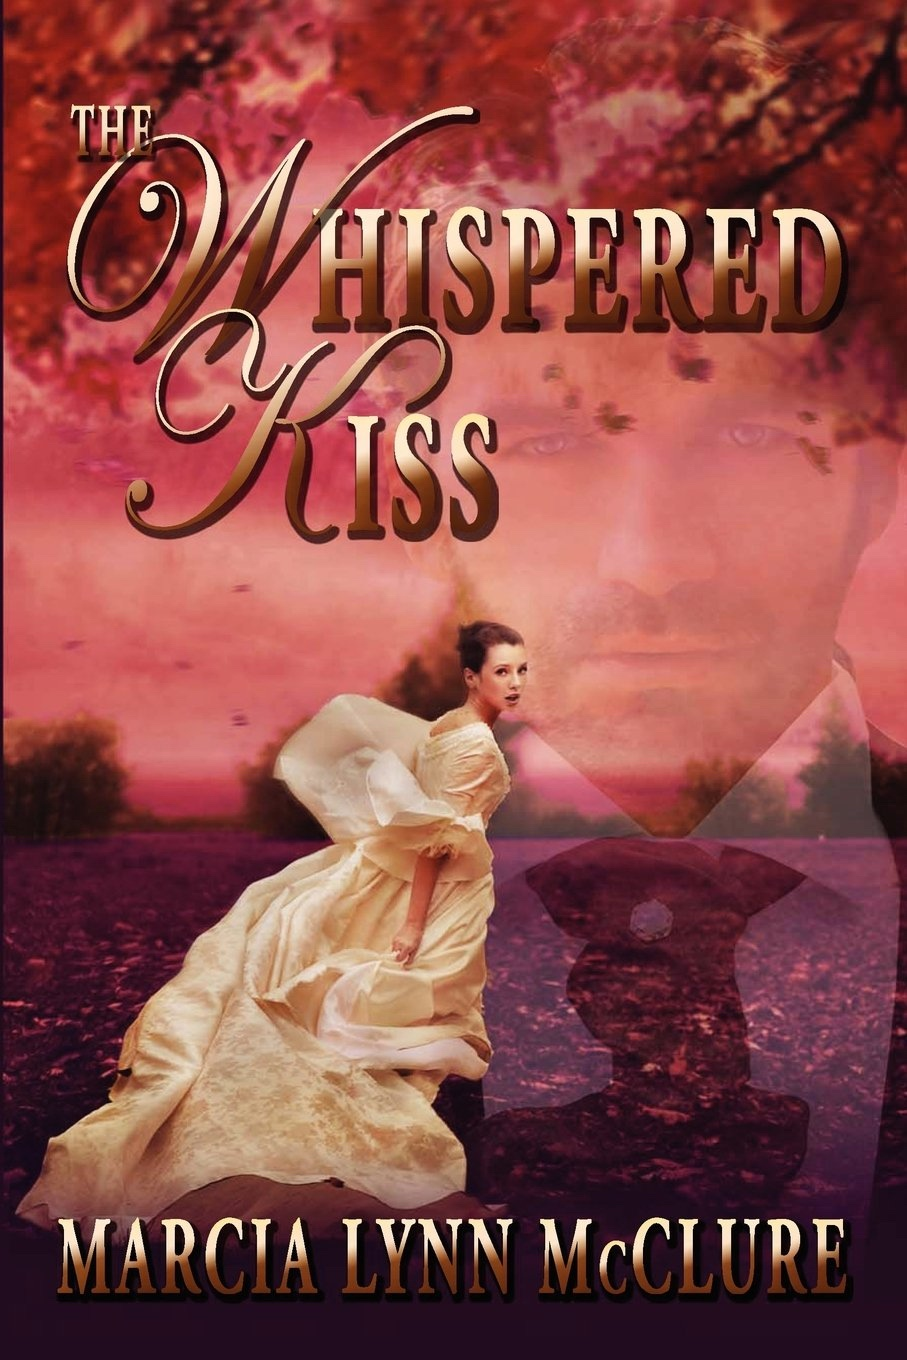 The Whispered Kiss, McClure, Marcia Lynn